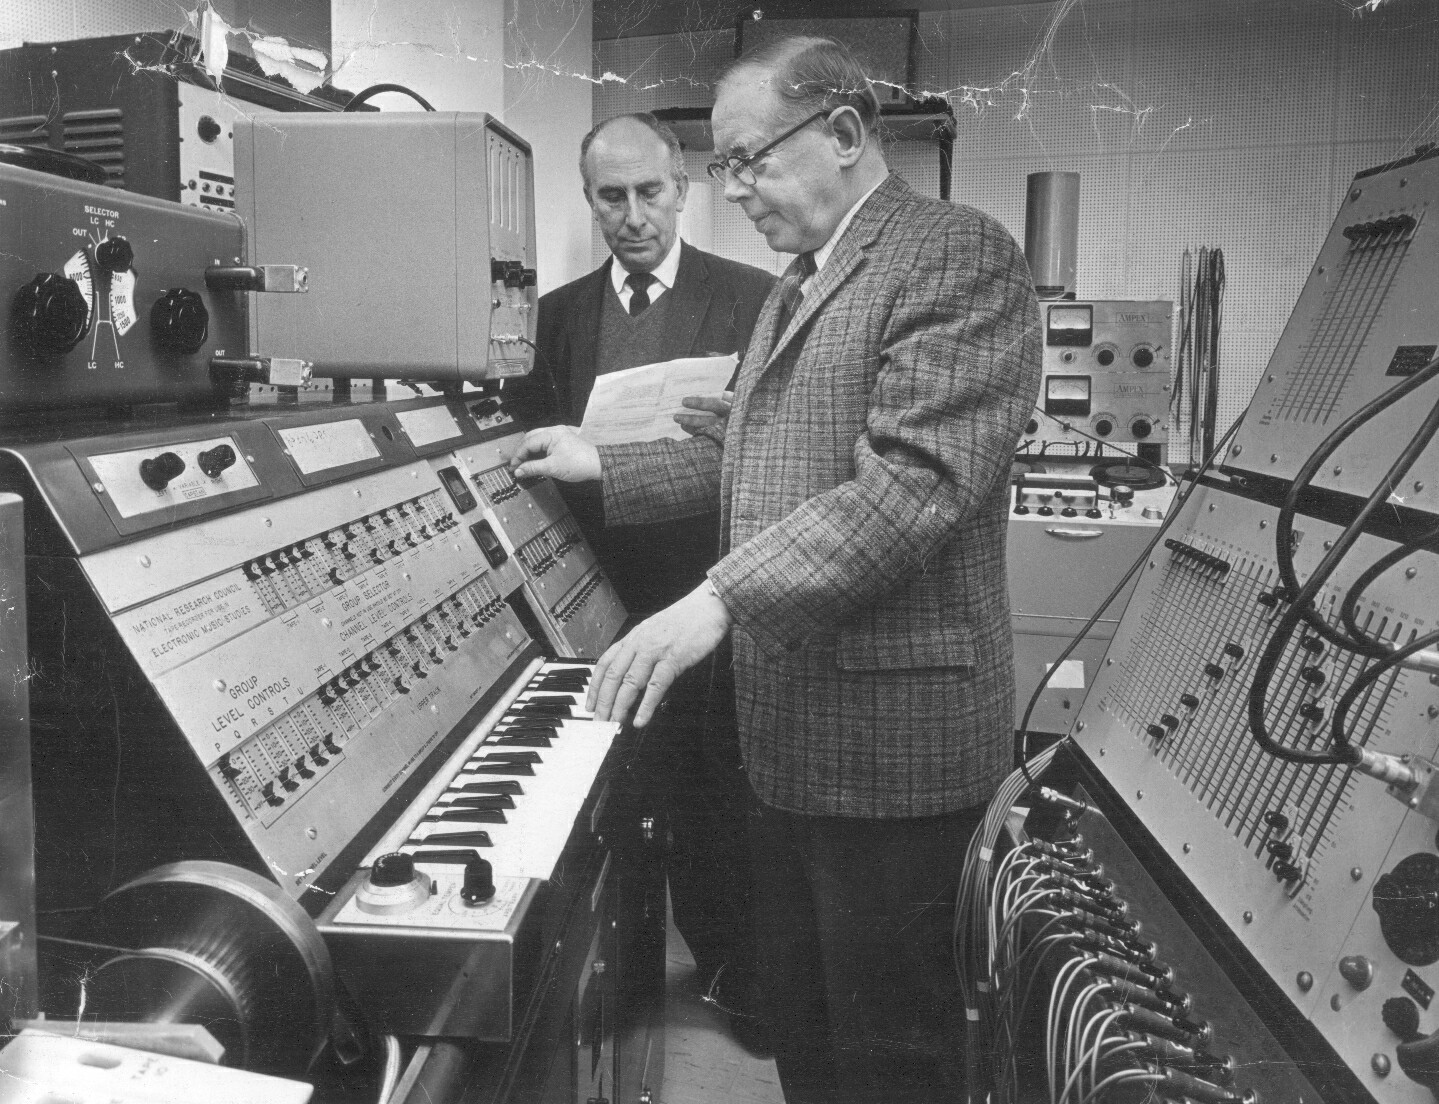 Professors Myron Schaeffer and Arnold Water in the Electronic Music Studio in the Edward Johnson Building, early 1960s